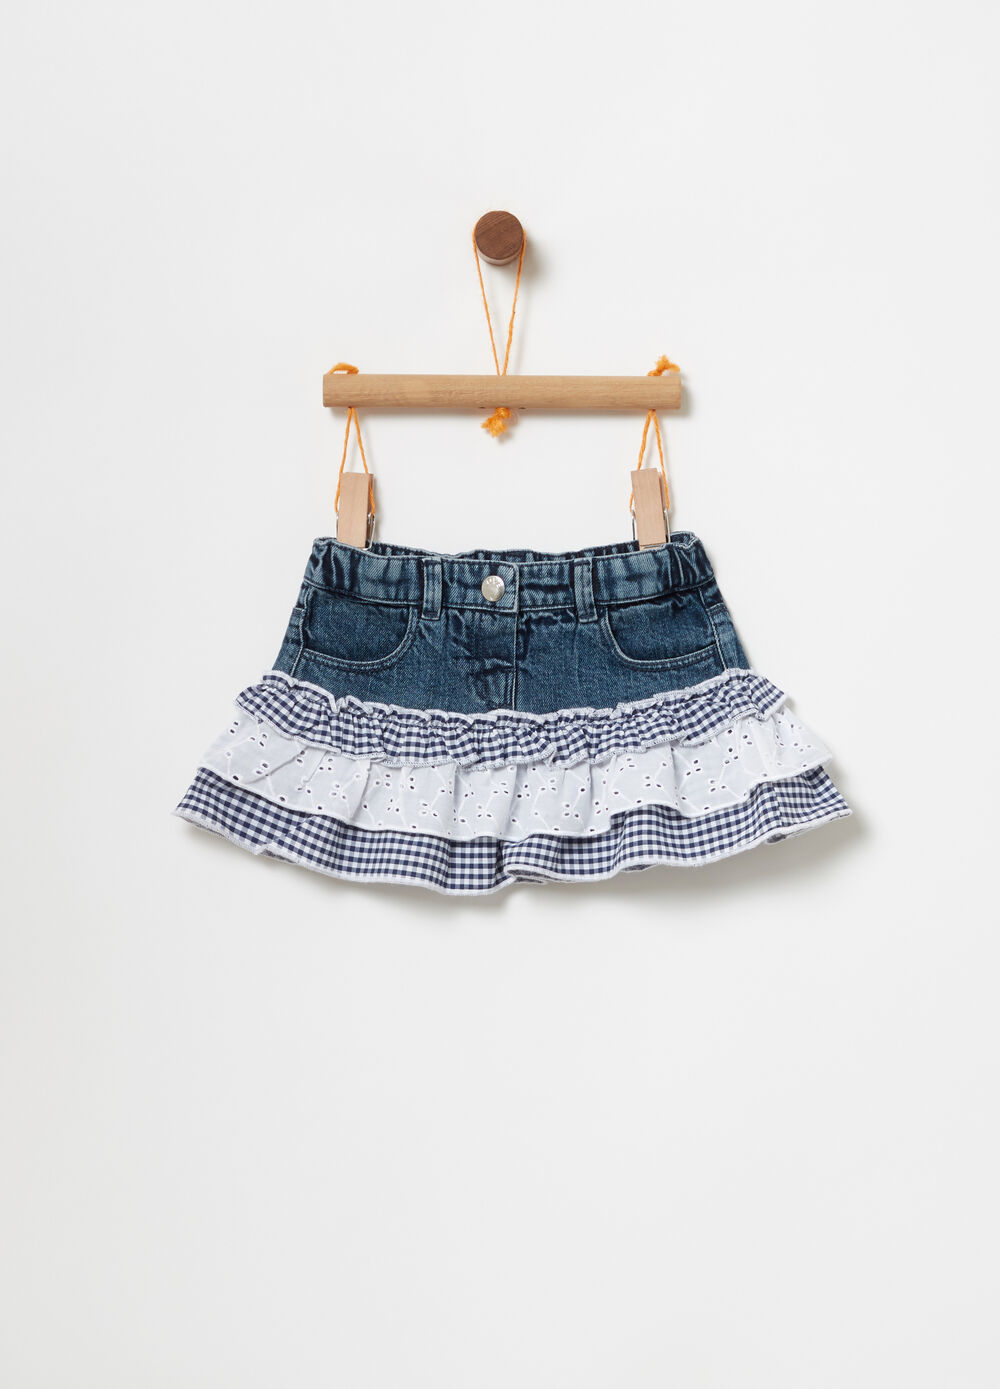 Denim skirt with flounces in Vichy and lace